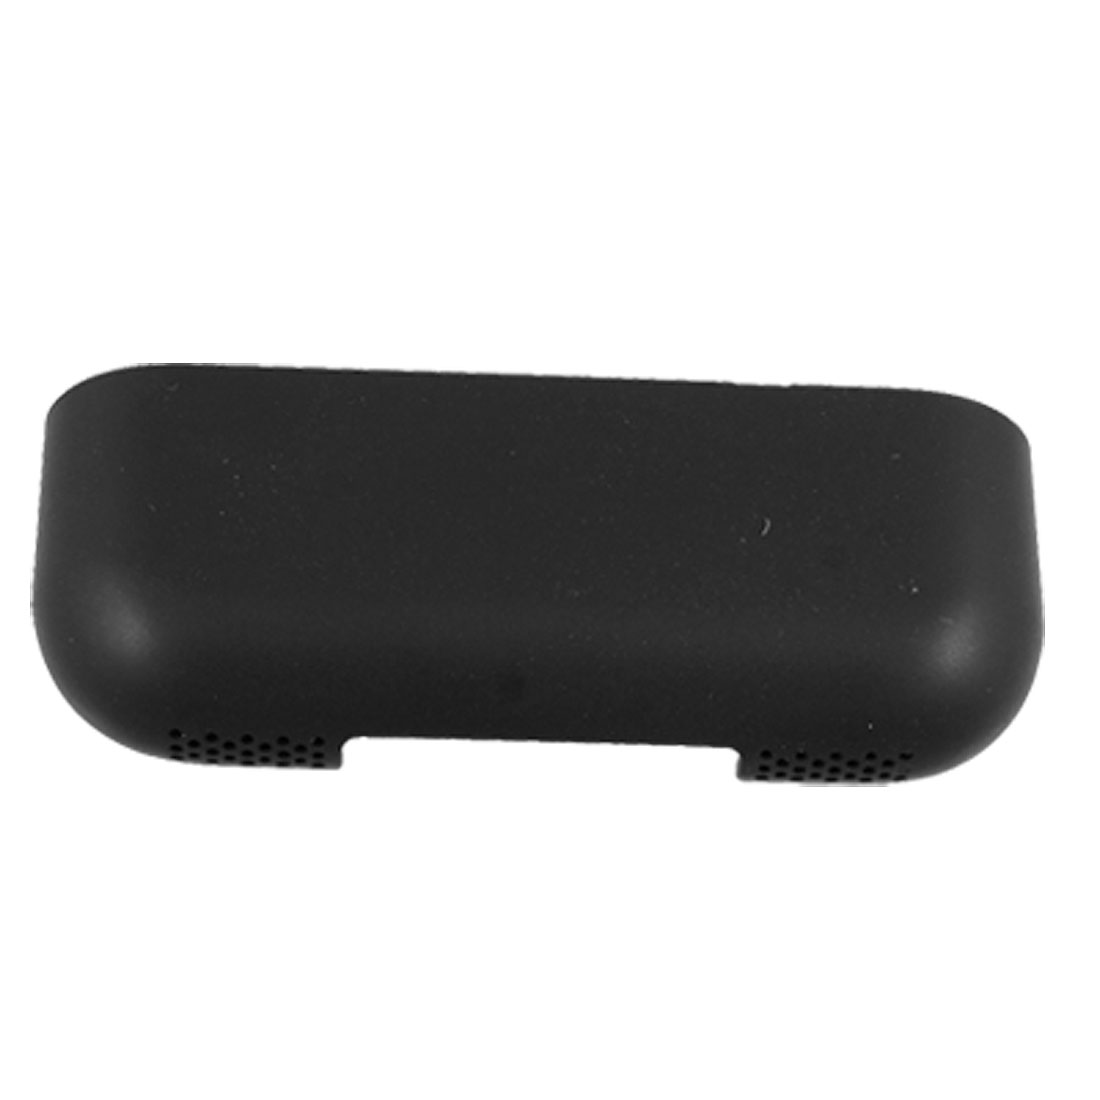 Black Plastic Antenna Cover Aerial Lid Replacement for Phone 2G